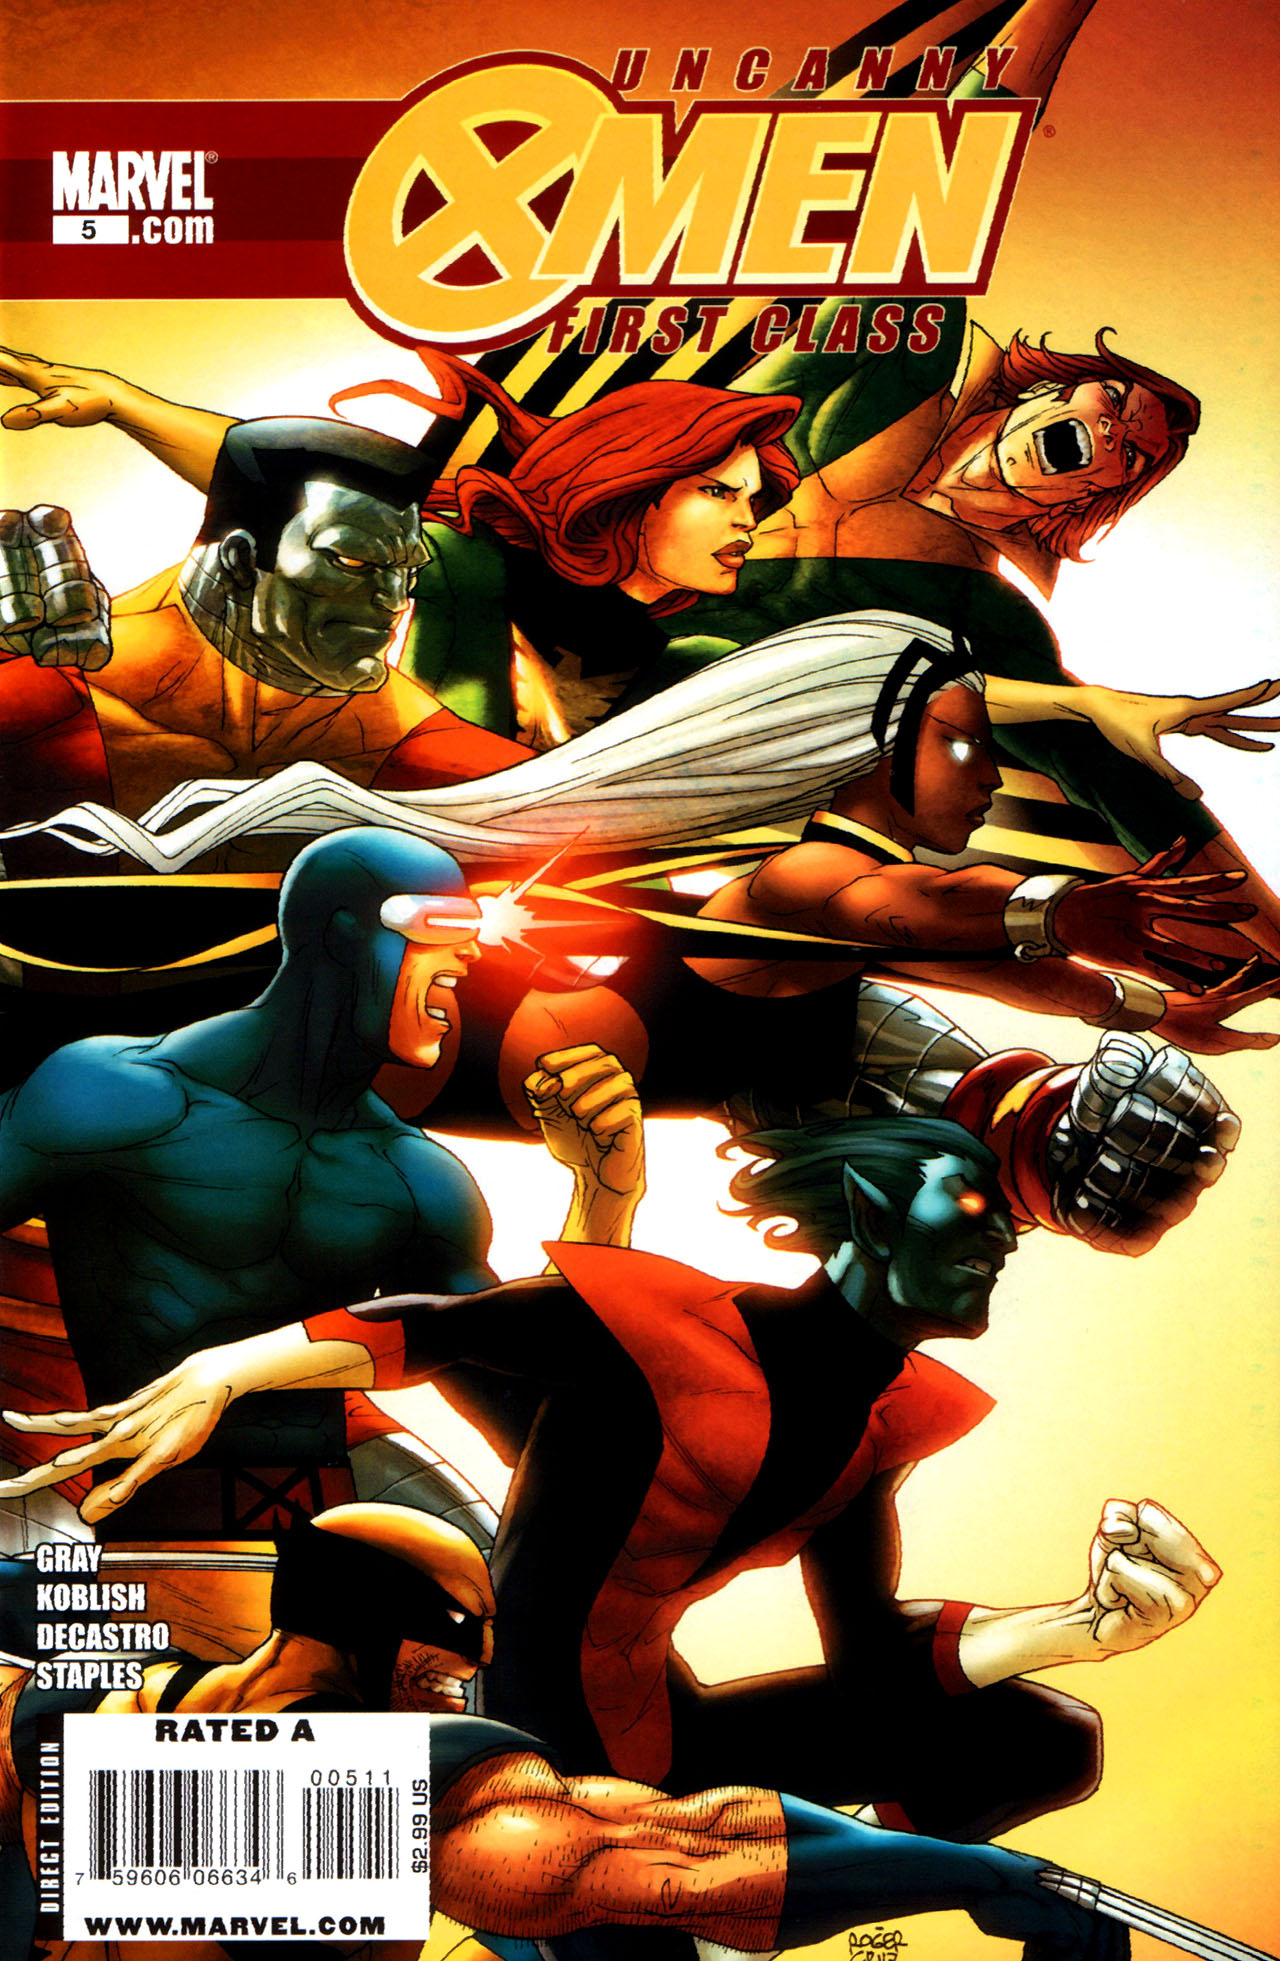 Read online Uncanny X-Men: First Class comic -  Issue #5 - 1